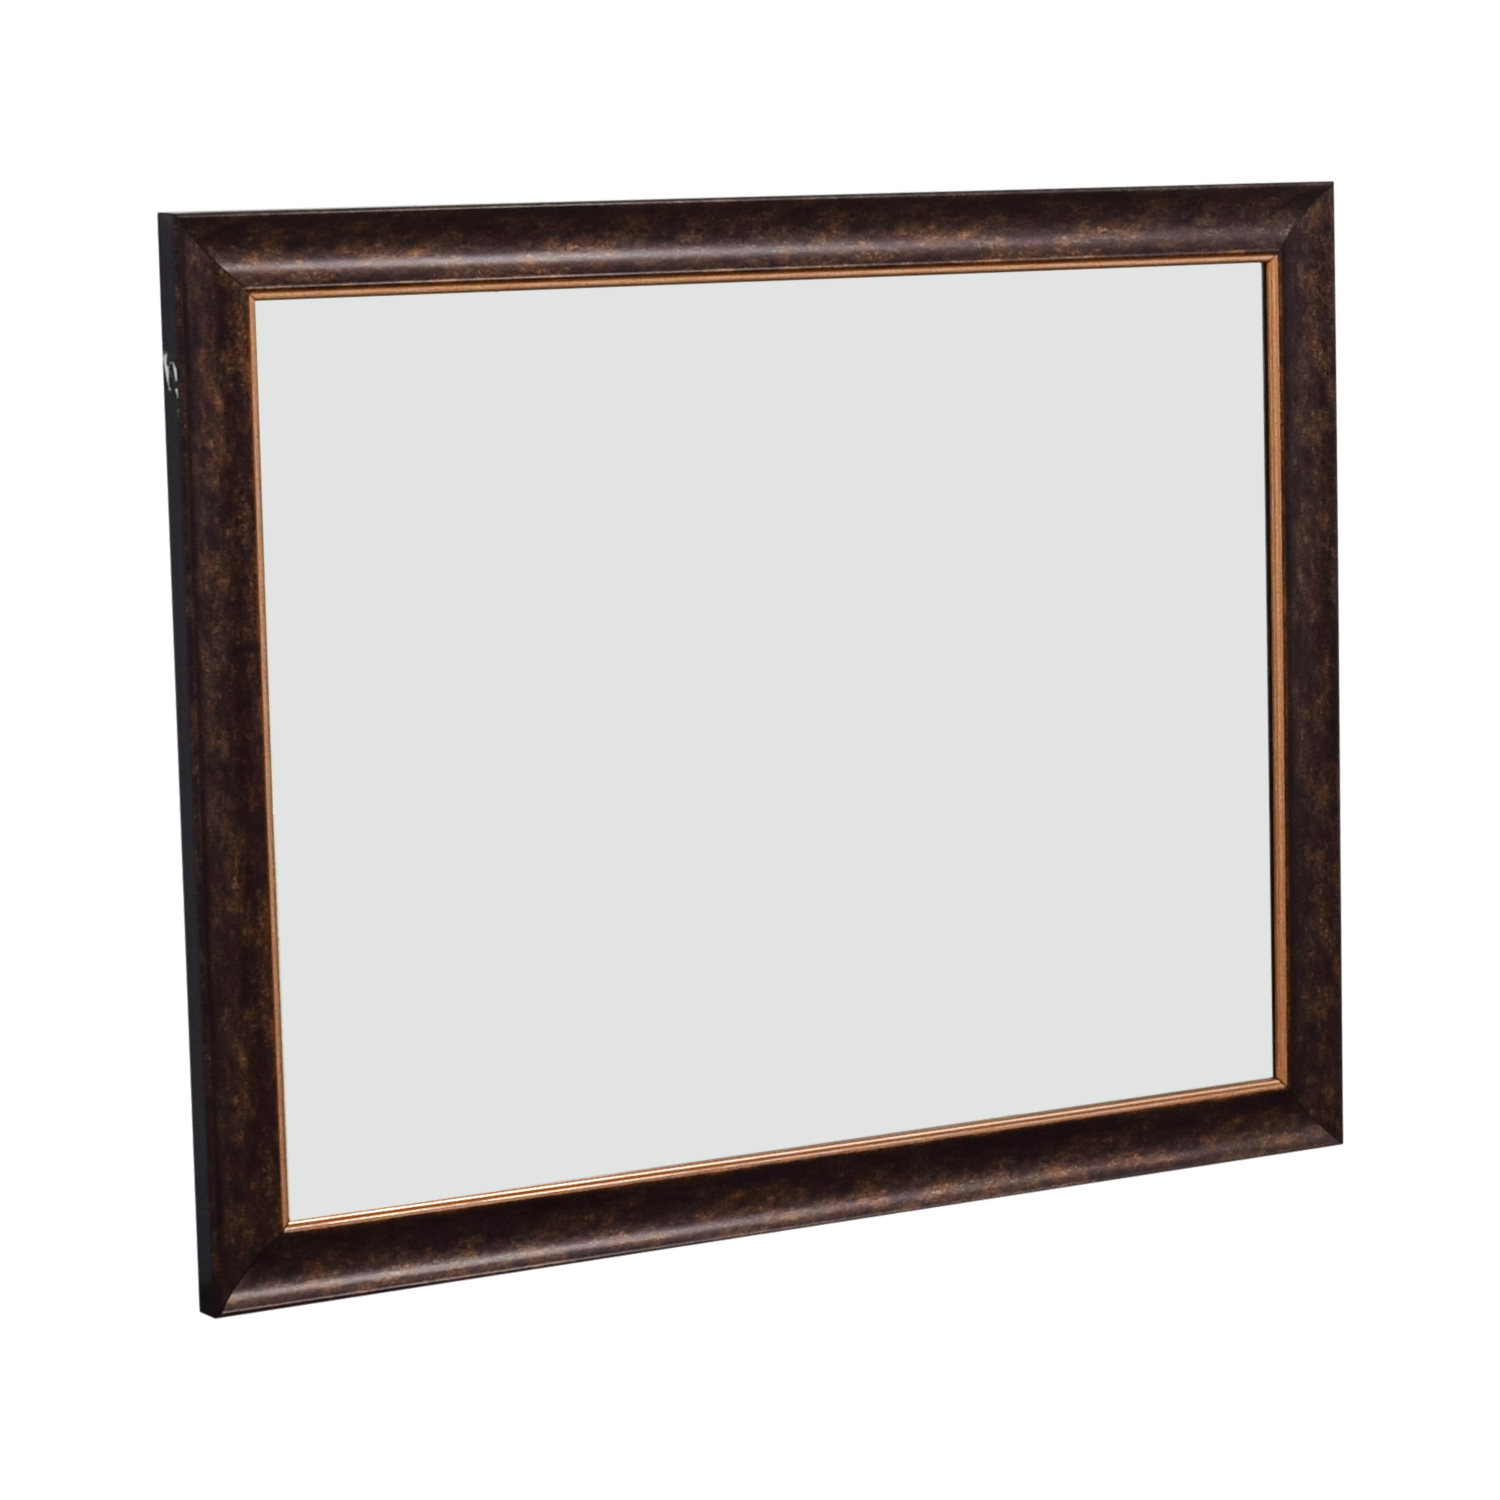 Bombay and Company Bombay and Company Rustic Beveled Mirror dimensions